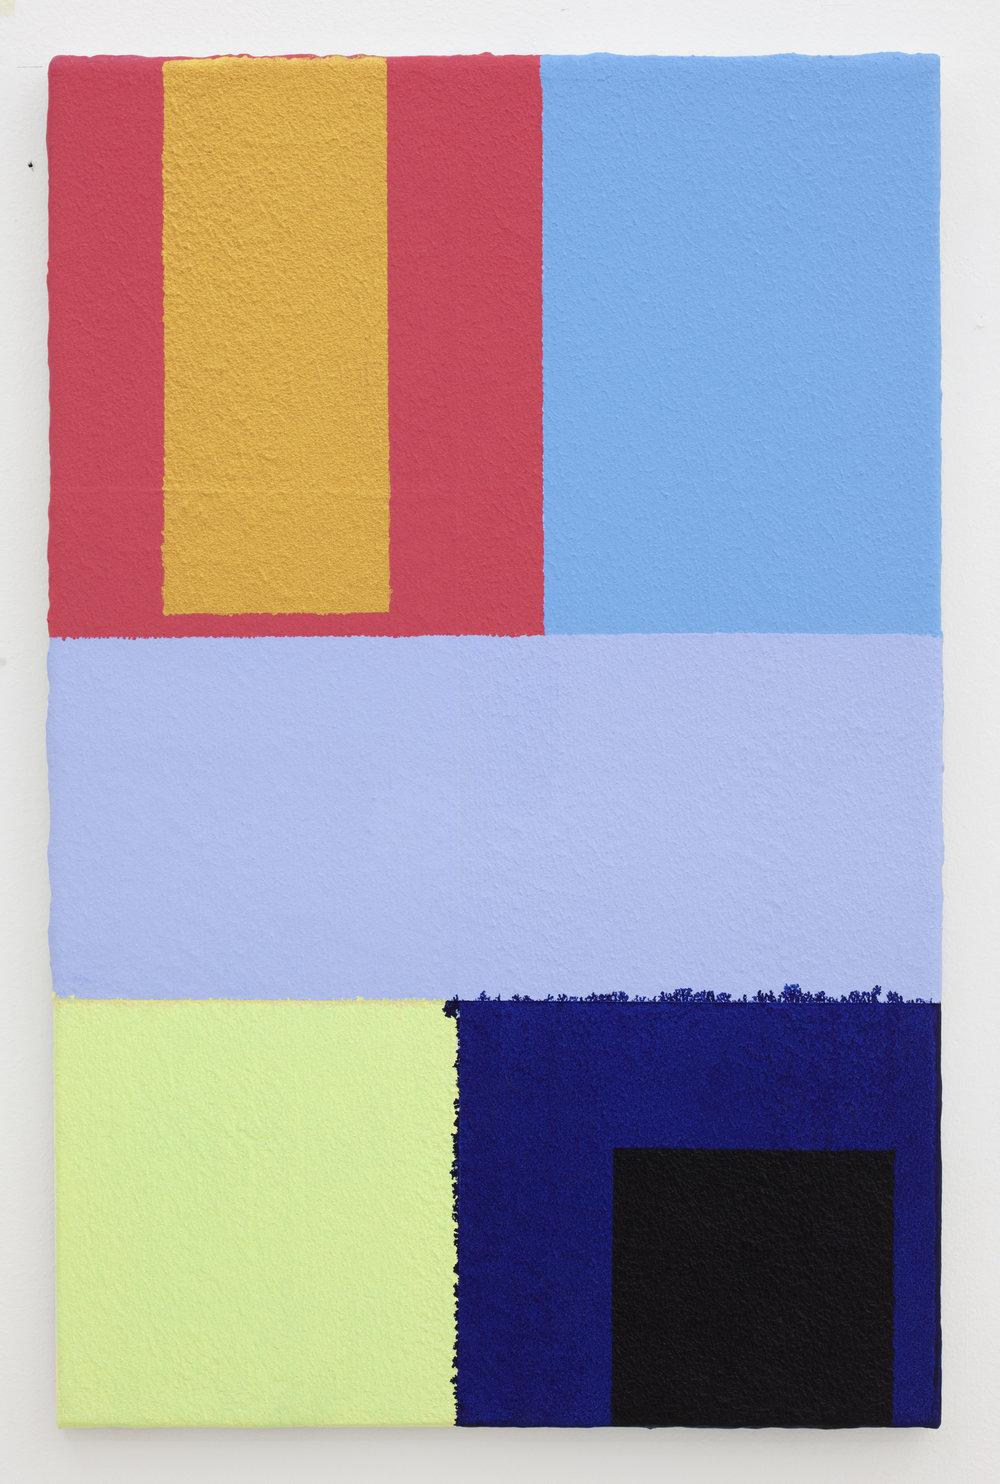 - 38. PRICE: € (EUR) 1.480. Bodil Nielsen. Untitled. 2012. Acrylic on canvas. 60 x 45 cm.